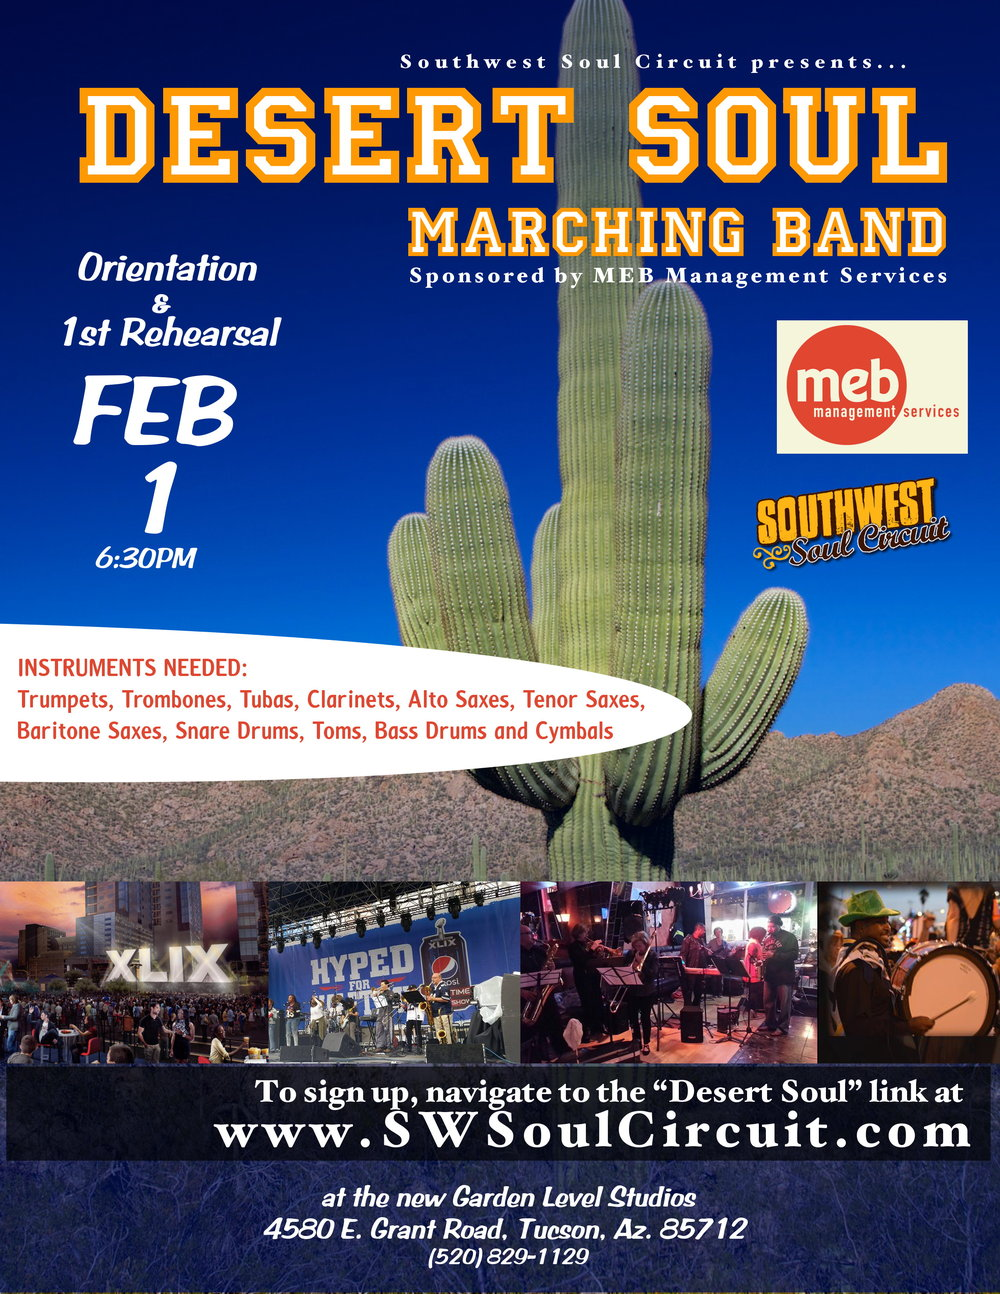 Desert Soul Marching Band - Orientation & Rehearsal.jpg